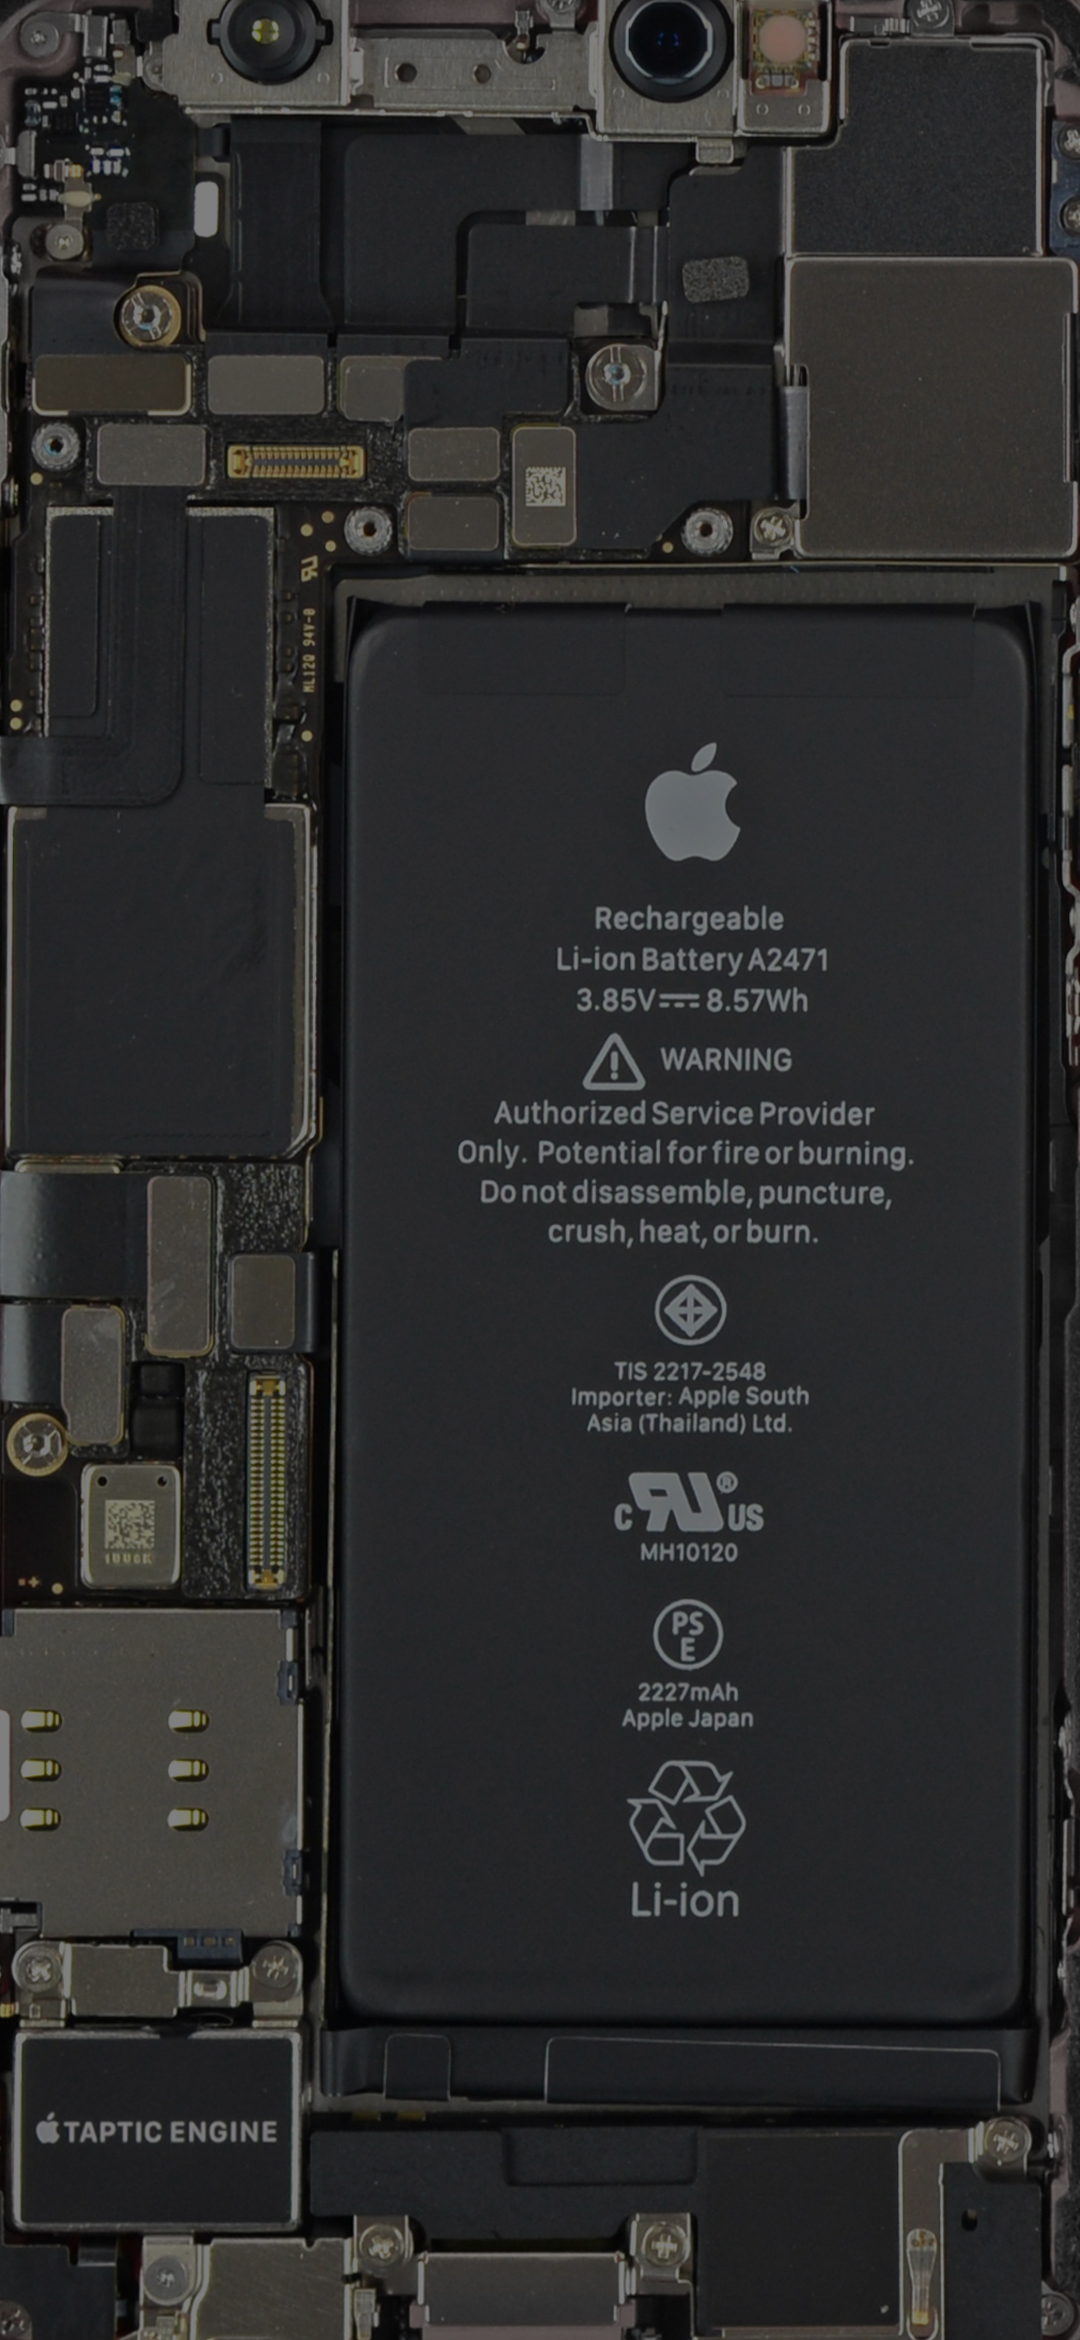 iPhone 12 mini internals wallpaper